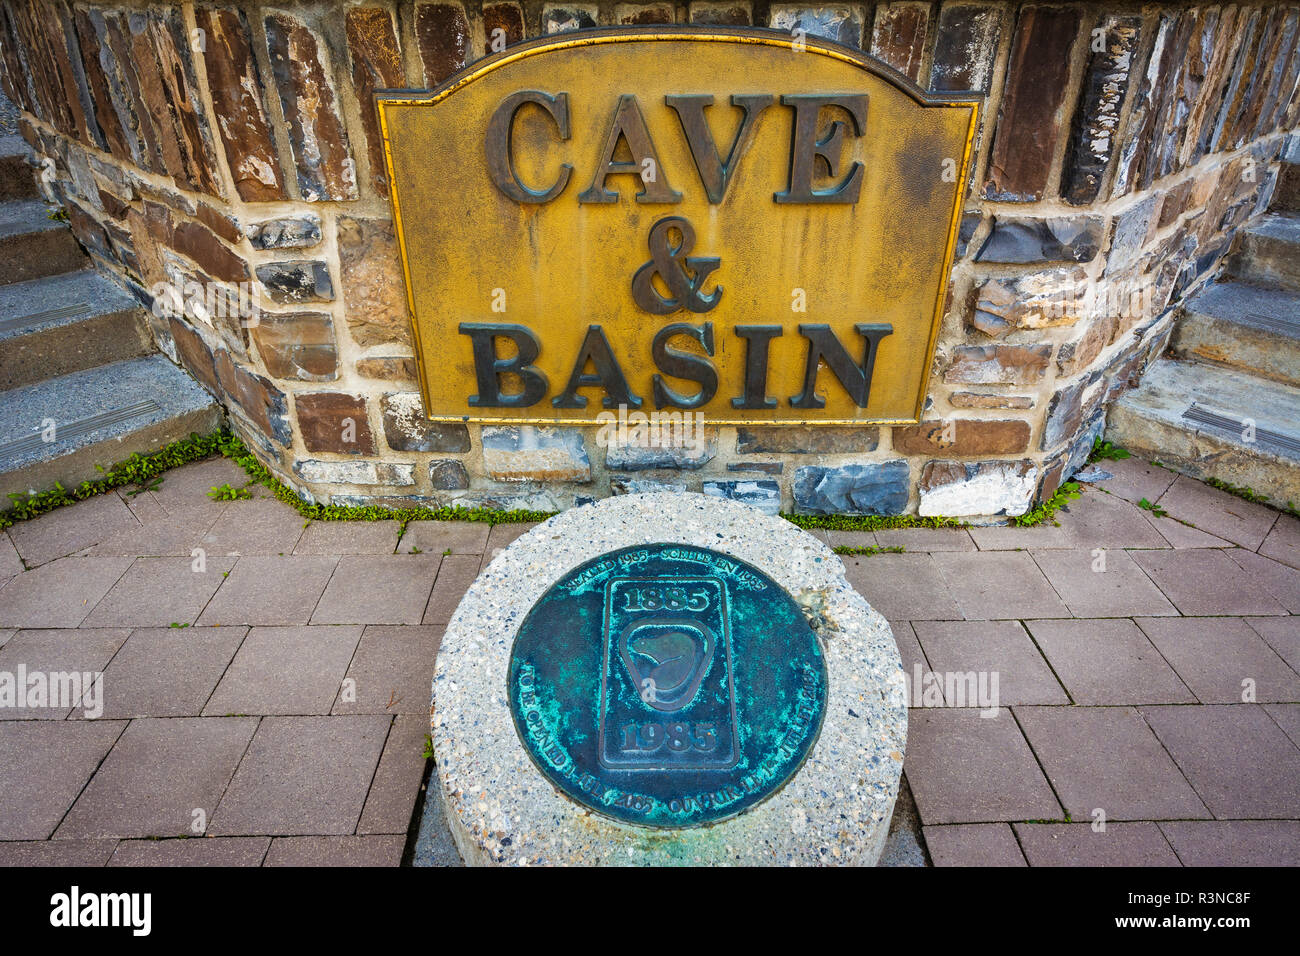 Cave and Basin National Historic Site, Banff National Park, Alberta, Canada - Stock Image